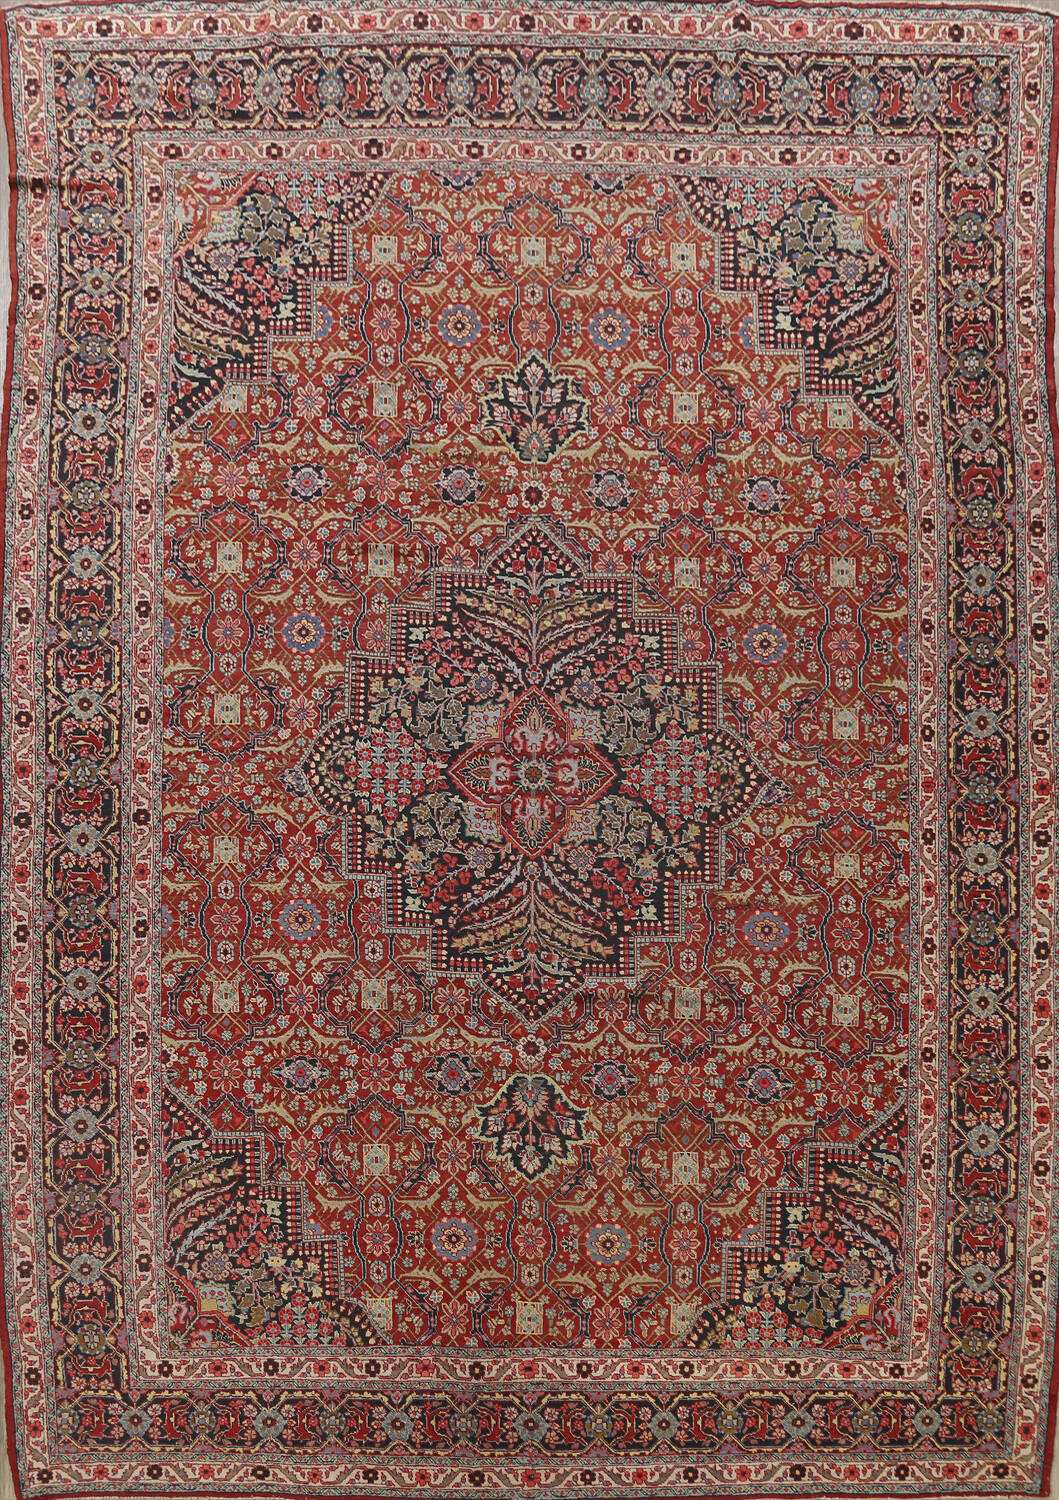 Pre-1900 Antique Sultanabad Persian Area Rug 11x13 Large image 1